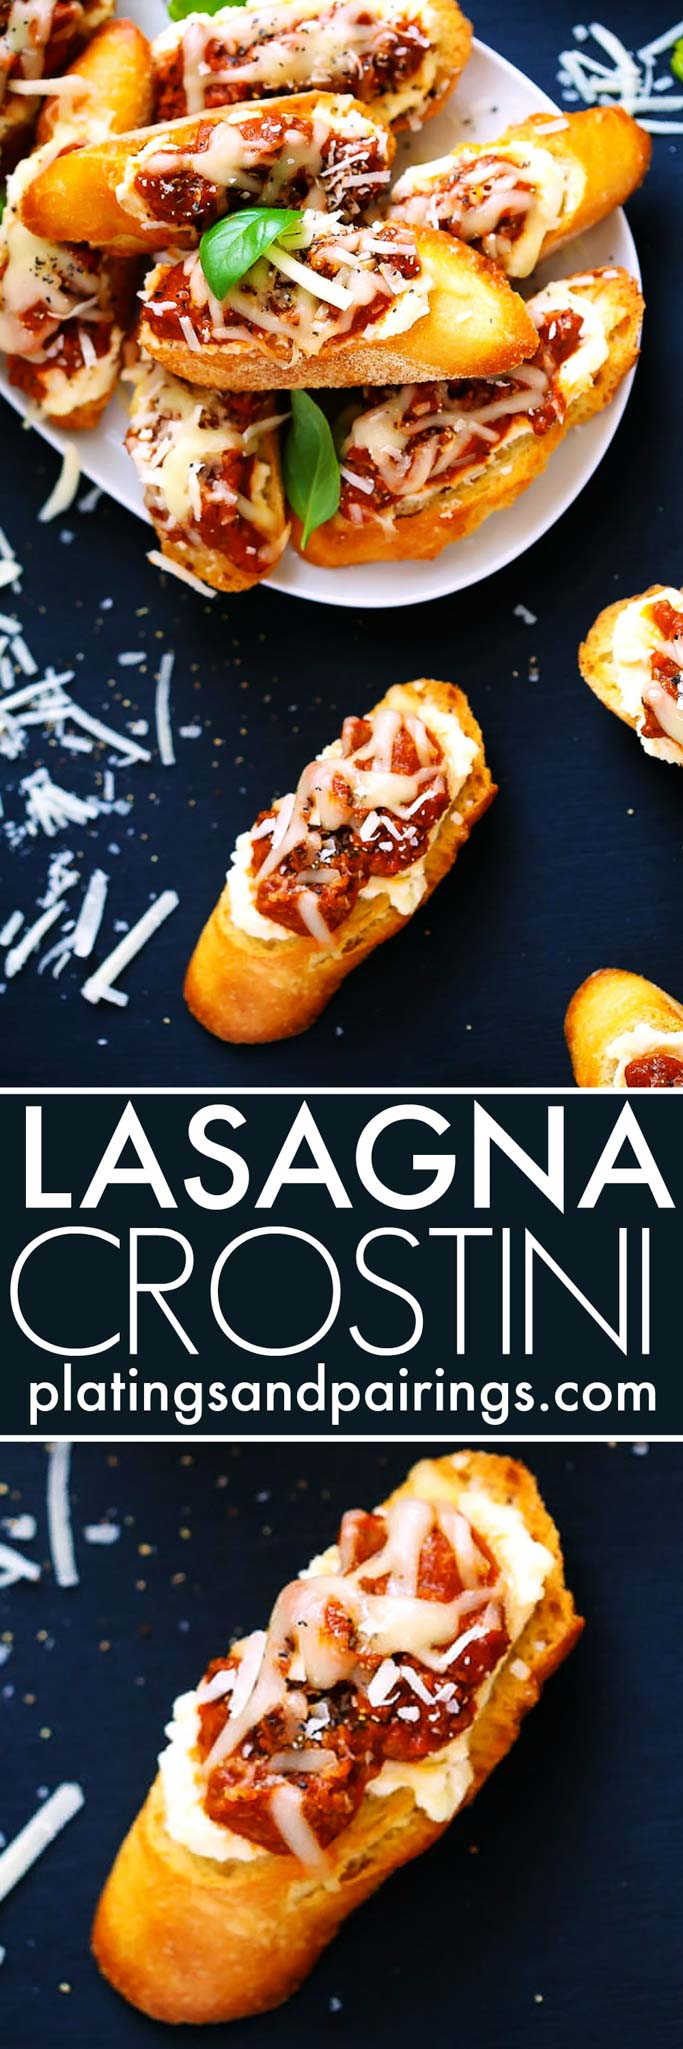 These Lasagna Crostini are a perfect make ahead party appetizer. The Italian meat sauce, creamy ricotta and melty mozzarella cheese are irresistible. Pair them with Chianti for a delicious treat! | platingsandpairings.com